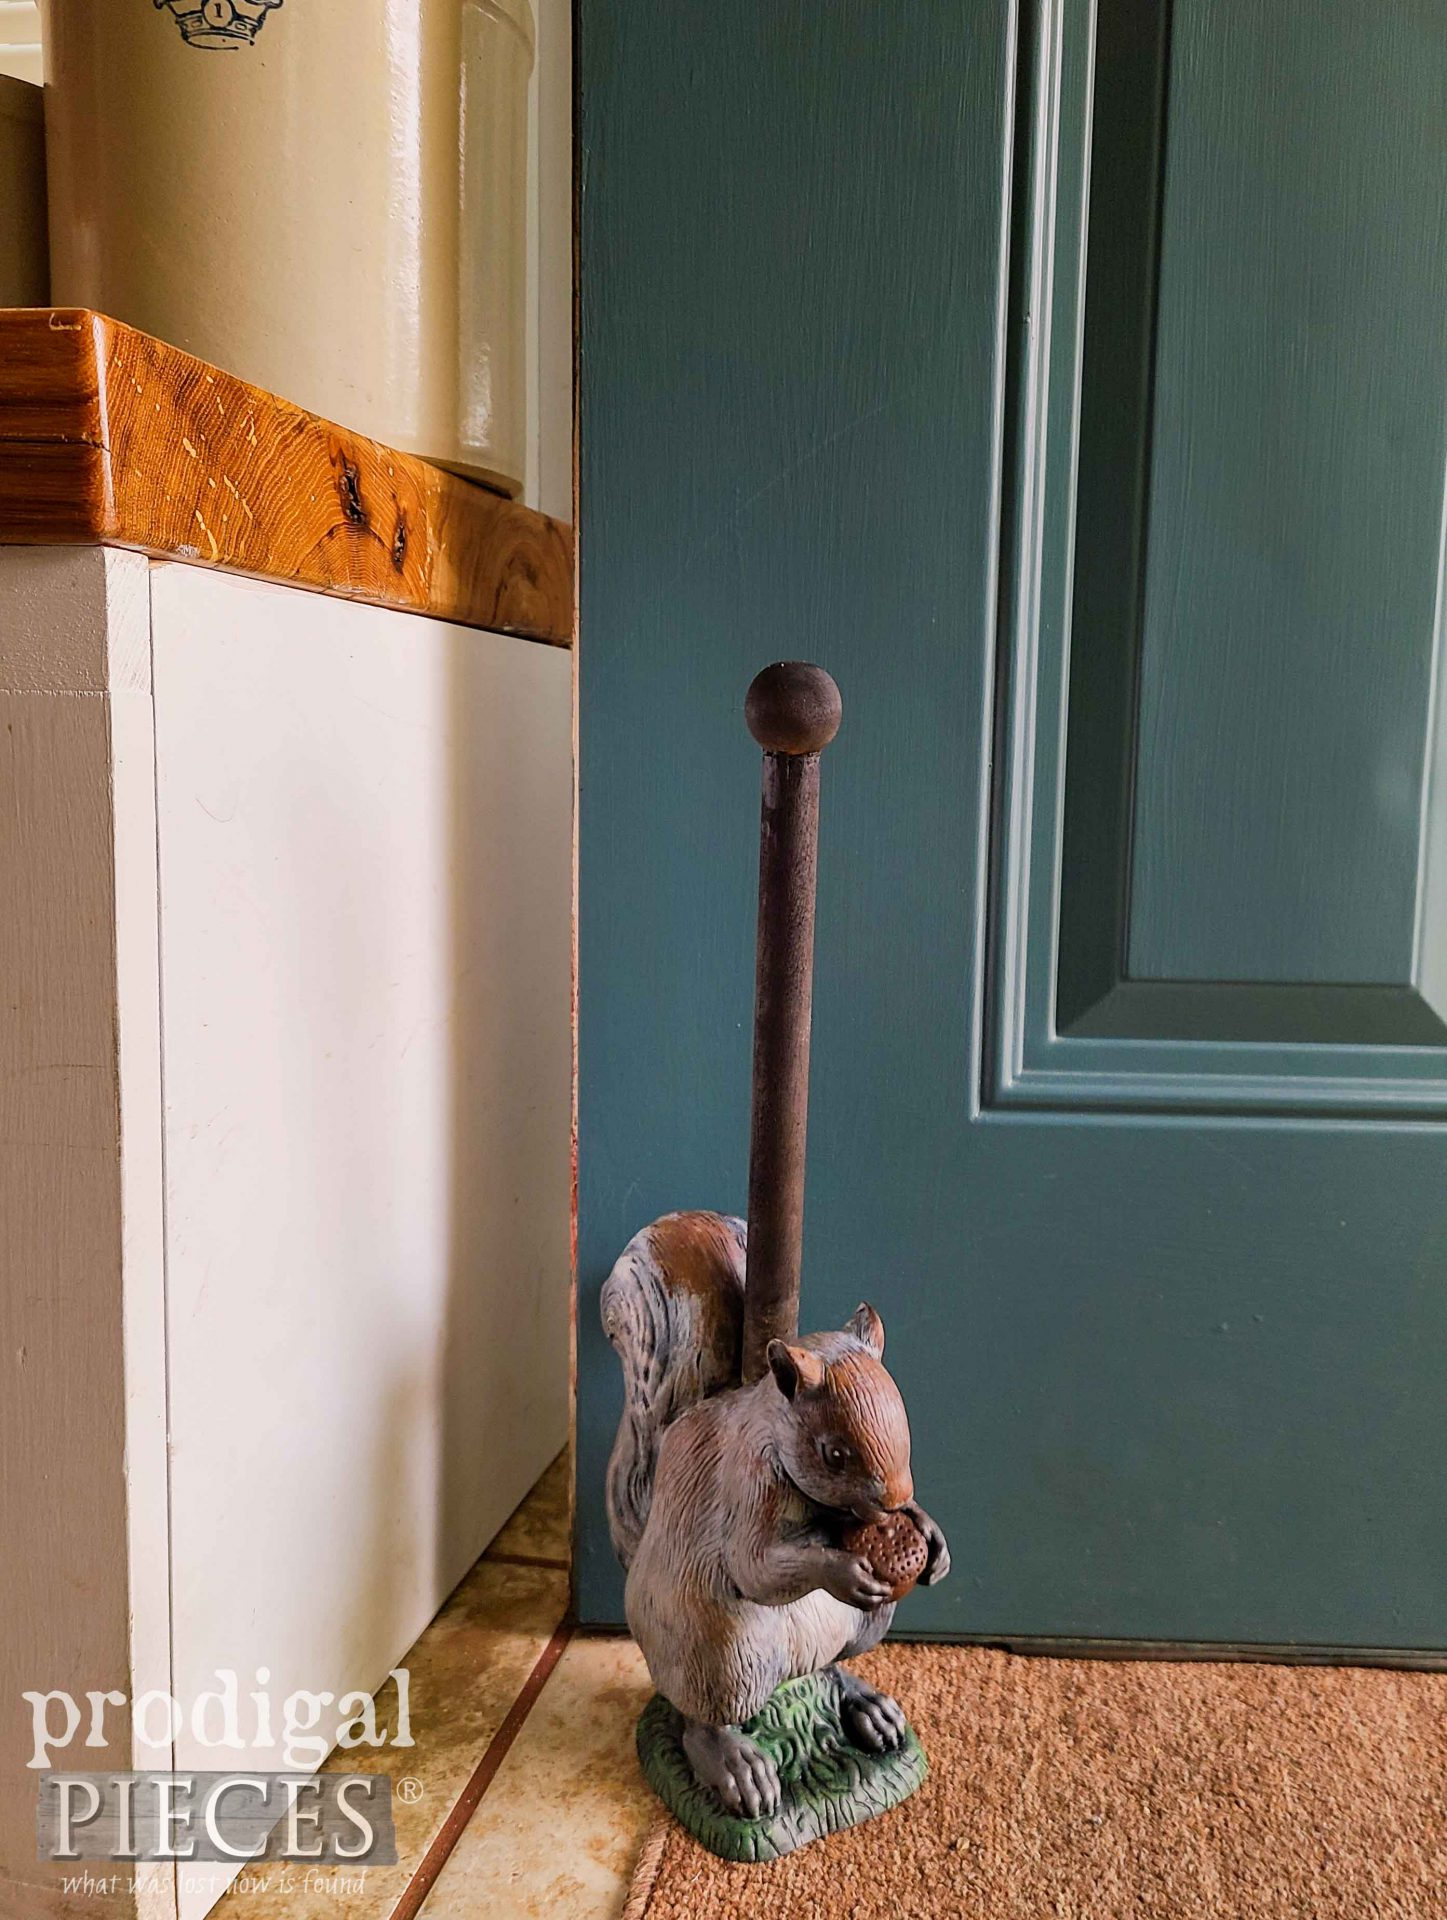 Gray Squirrel Doorstop by Larissa of Prodigal Pieces | prodigalpieces.com #prodigalpieces #handmade #home #homedecor #farmhouse